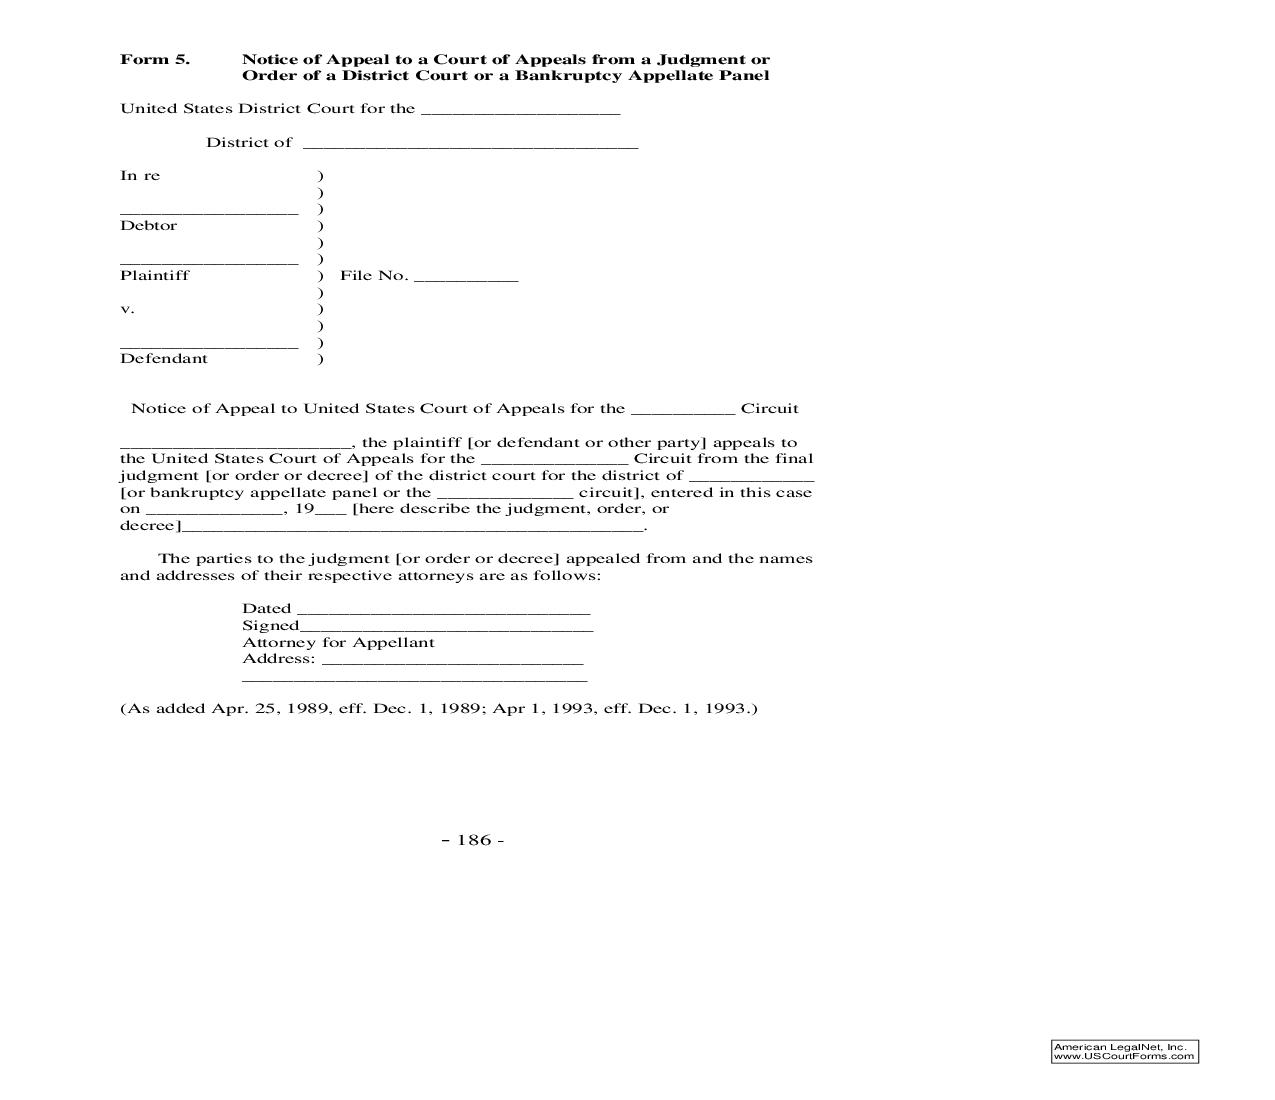 Form 5 Notice Of Appeal-Court Of Appeals-Judgment Or Order-District Court-Bankruptcy Appellate Panel {5} | Pdf Fpdf Doc Docx | Official Federal Forms